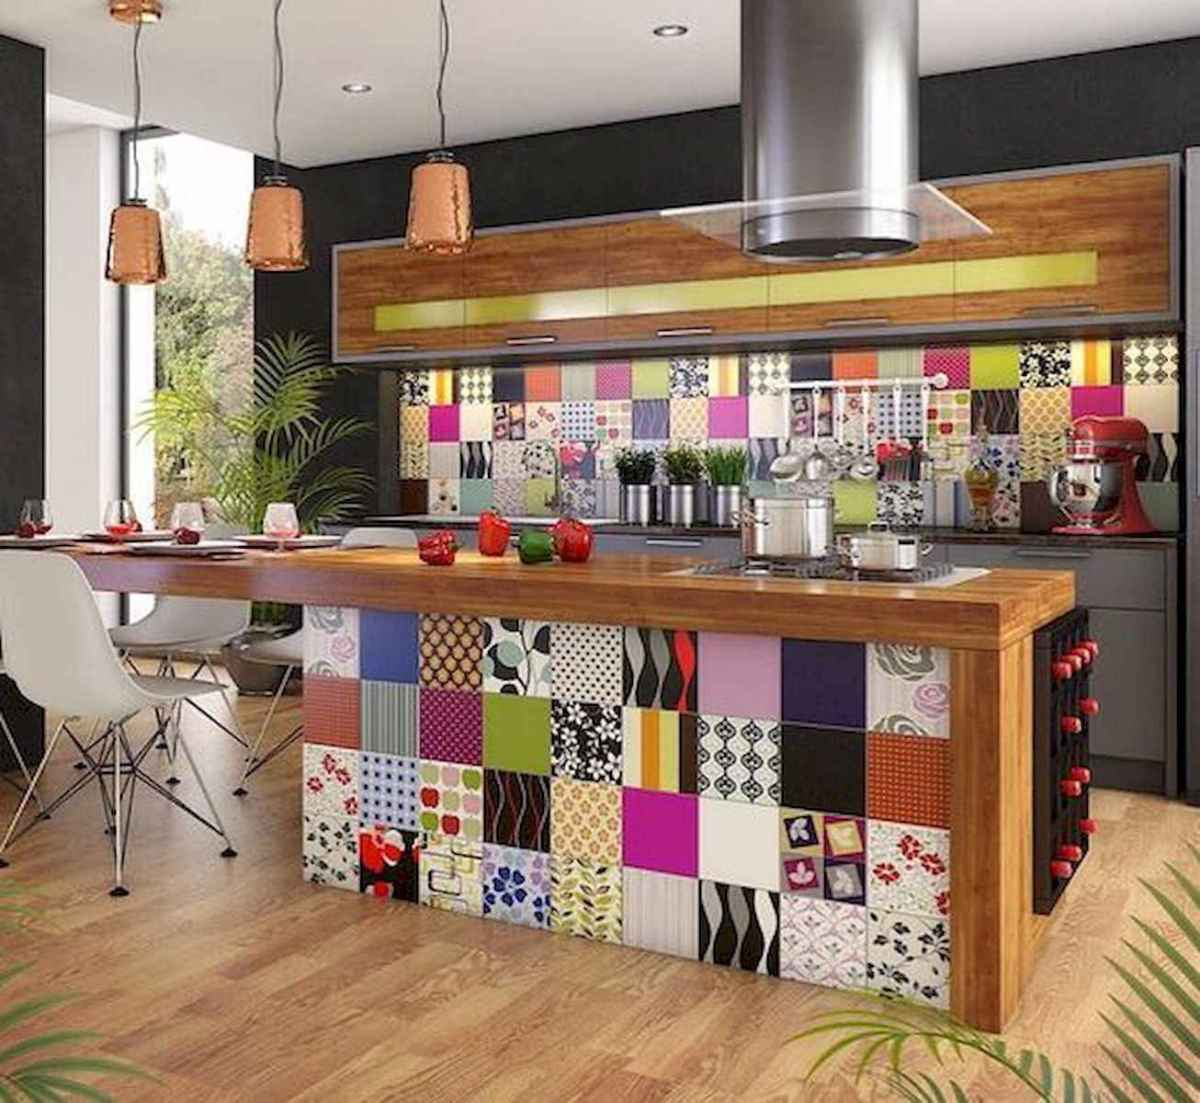 80+ Fantastic Colorful Kitchen Decor Ideas And Remodel for Summer Project (58)